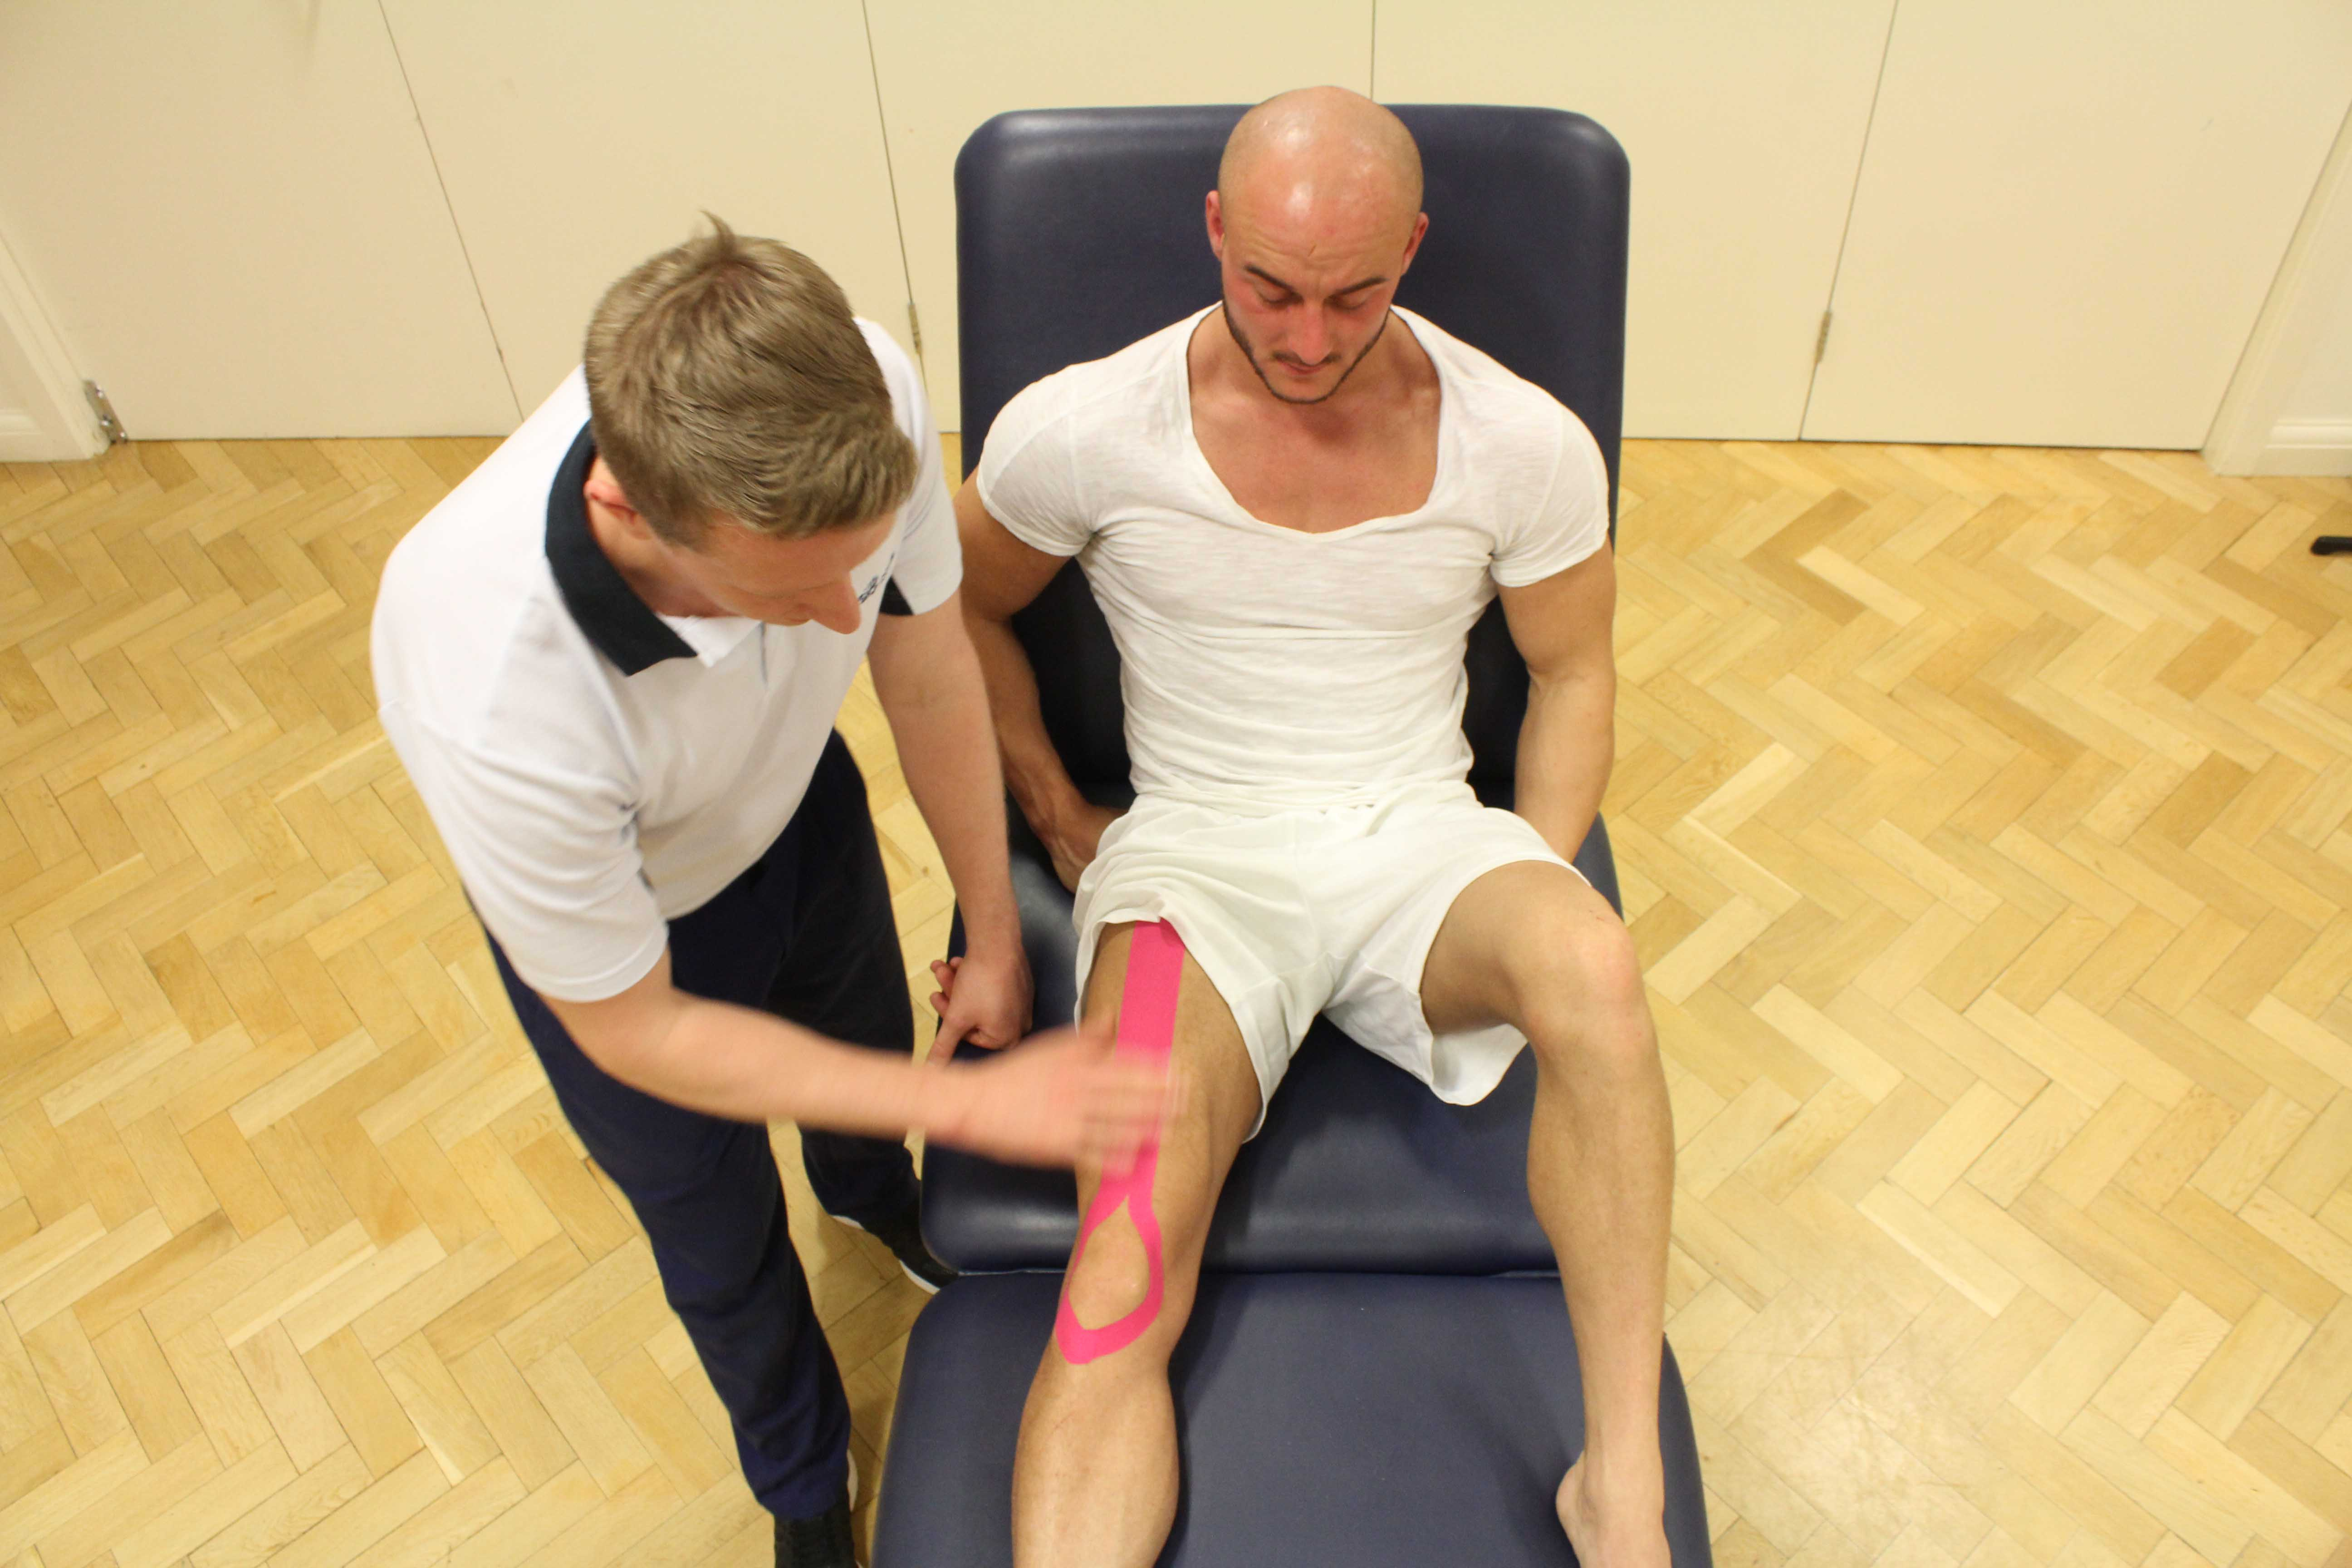 Use of taping to assist stability during knee strengthening exercises